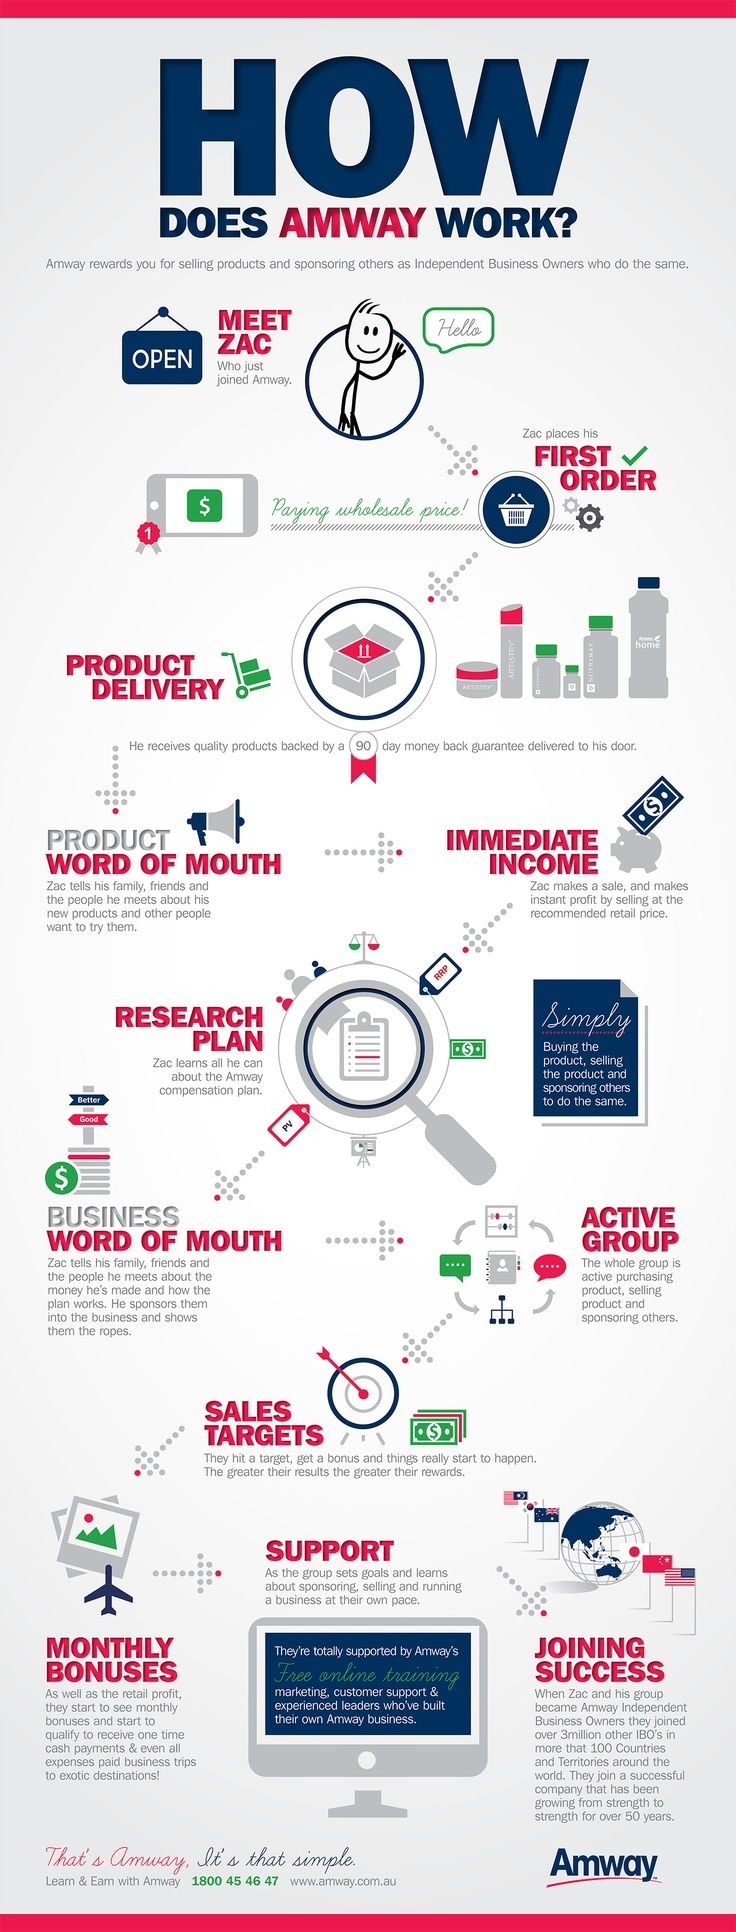 How Does Amway Work? - For more information about #Amway please visit: www.amway.com.au